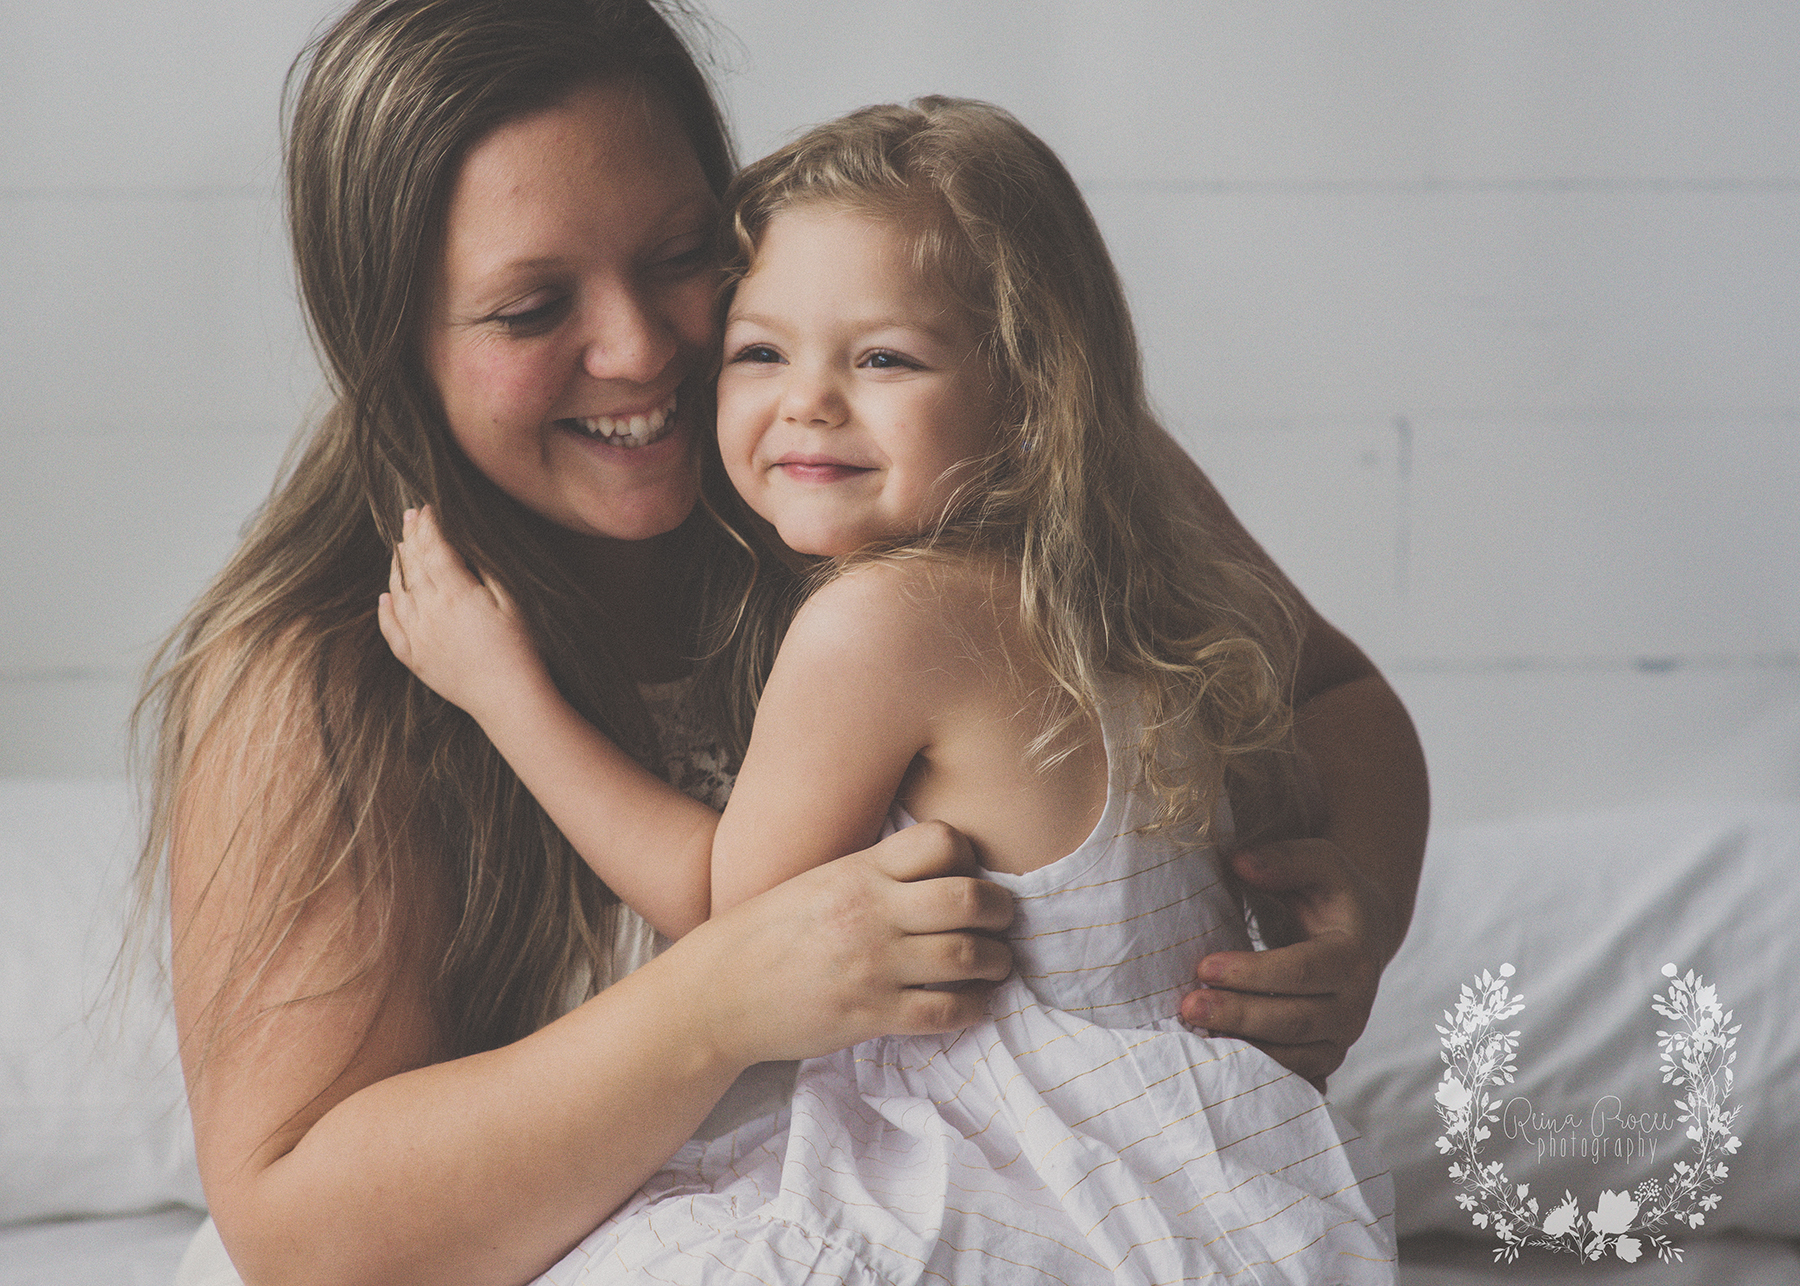 mother-child-love-family-portraits-montreal-photographer14.png